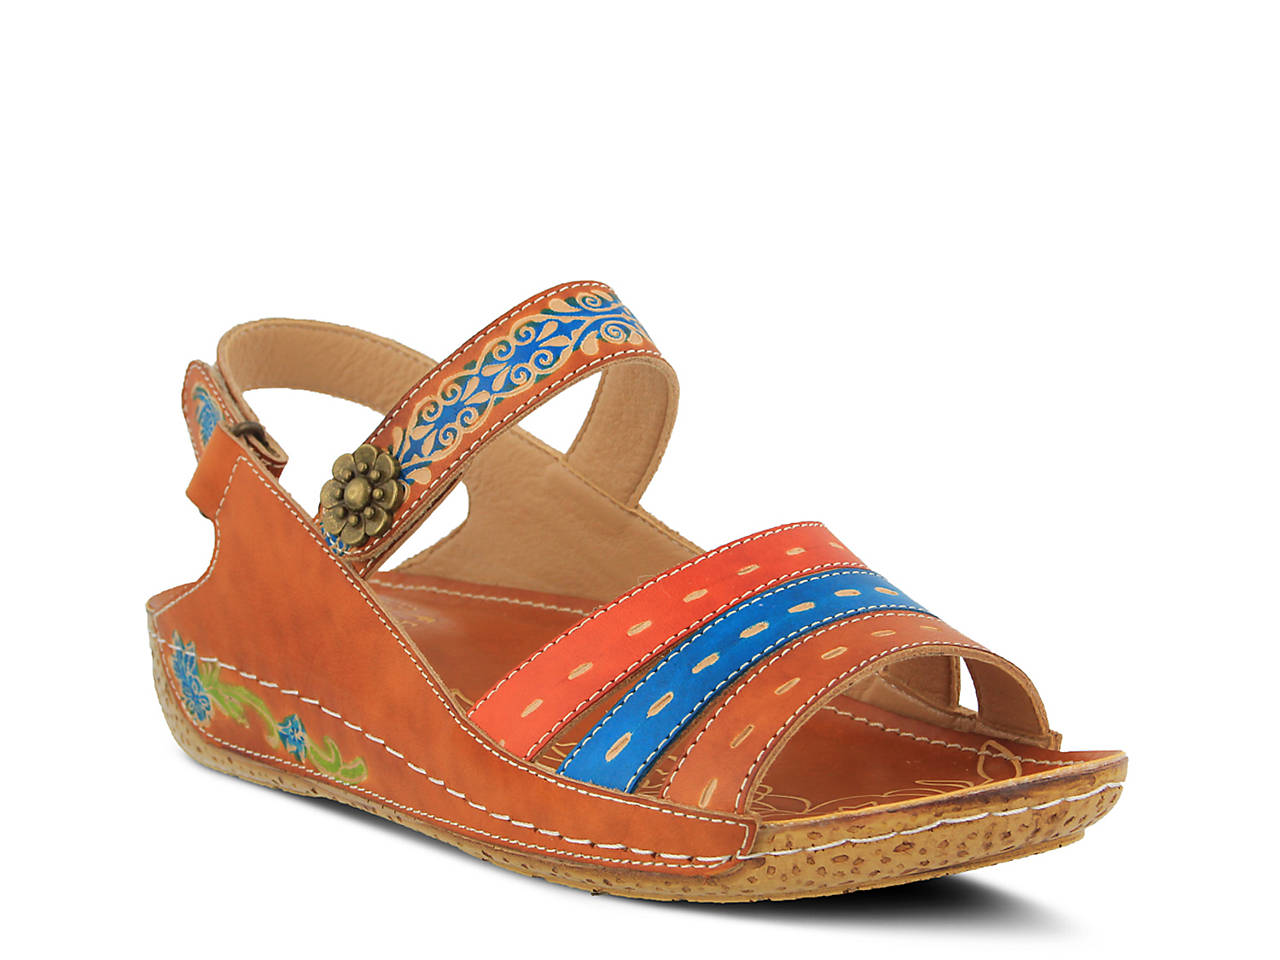 L'Artiste By Spring Step Kerry ... Women's Sandals xpucf6